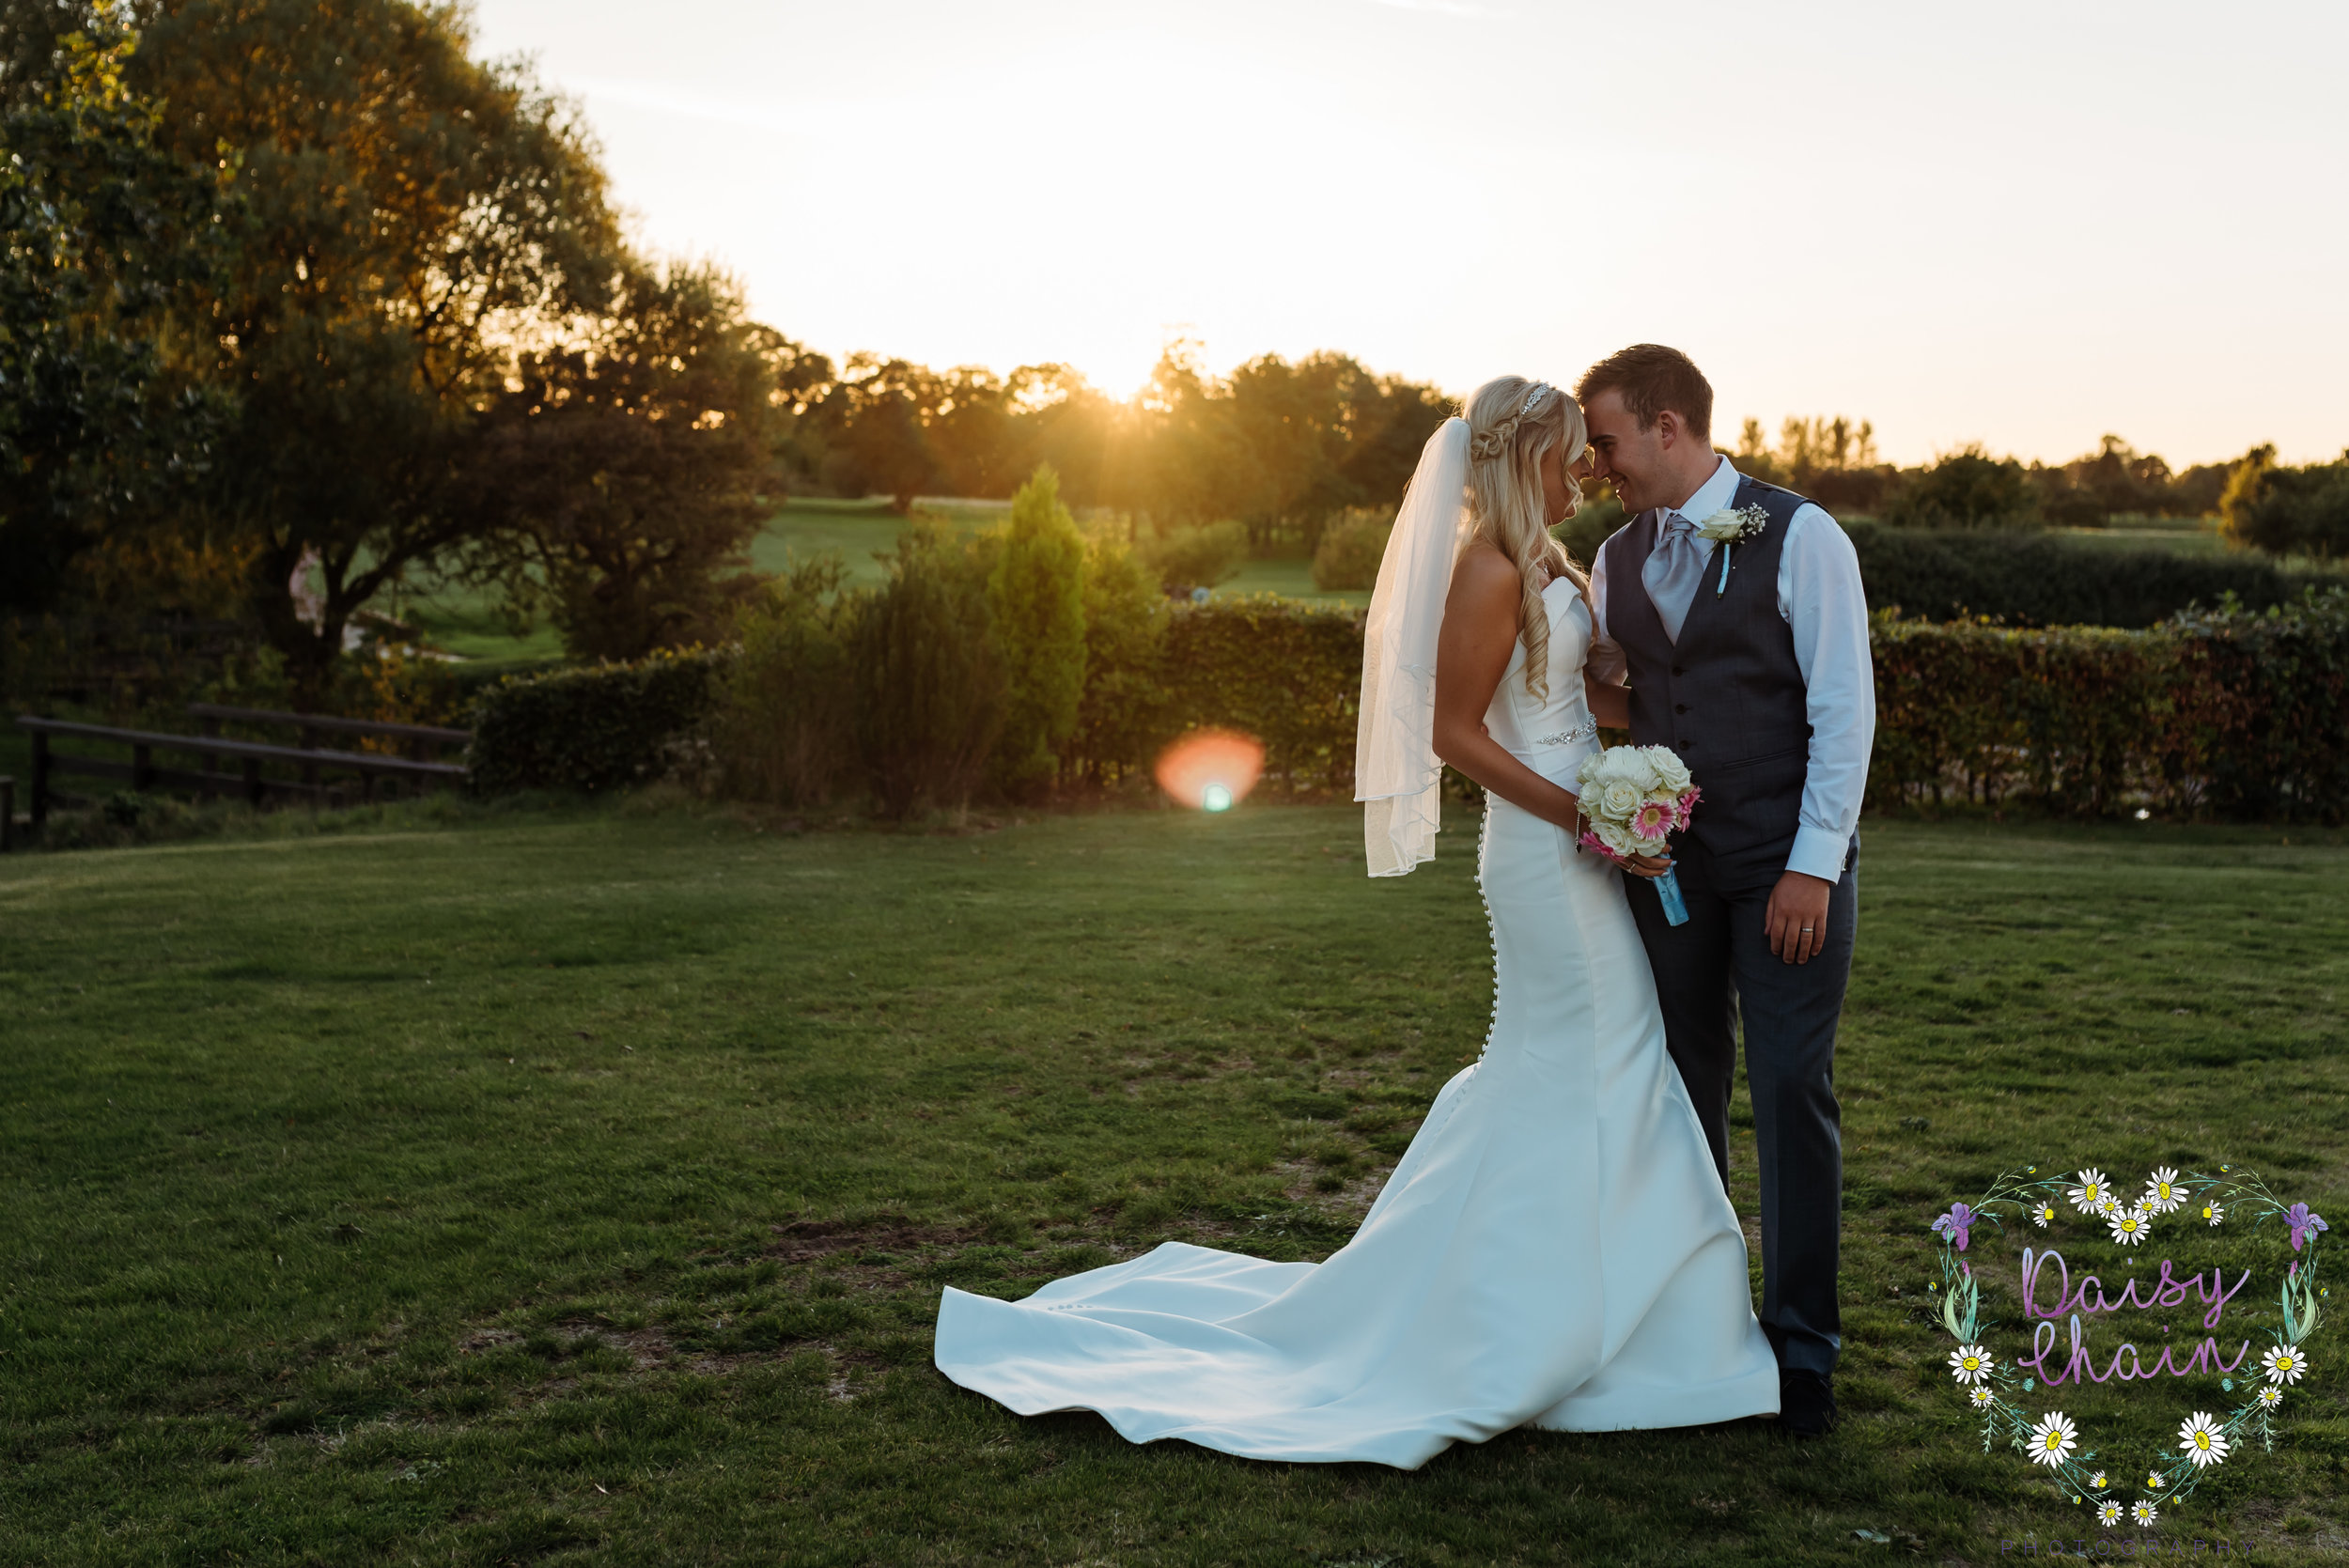 Sunset wedding photography - Merseyside